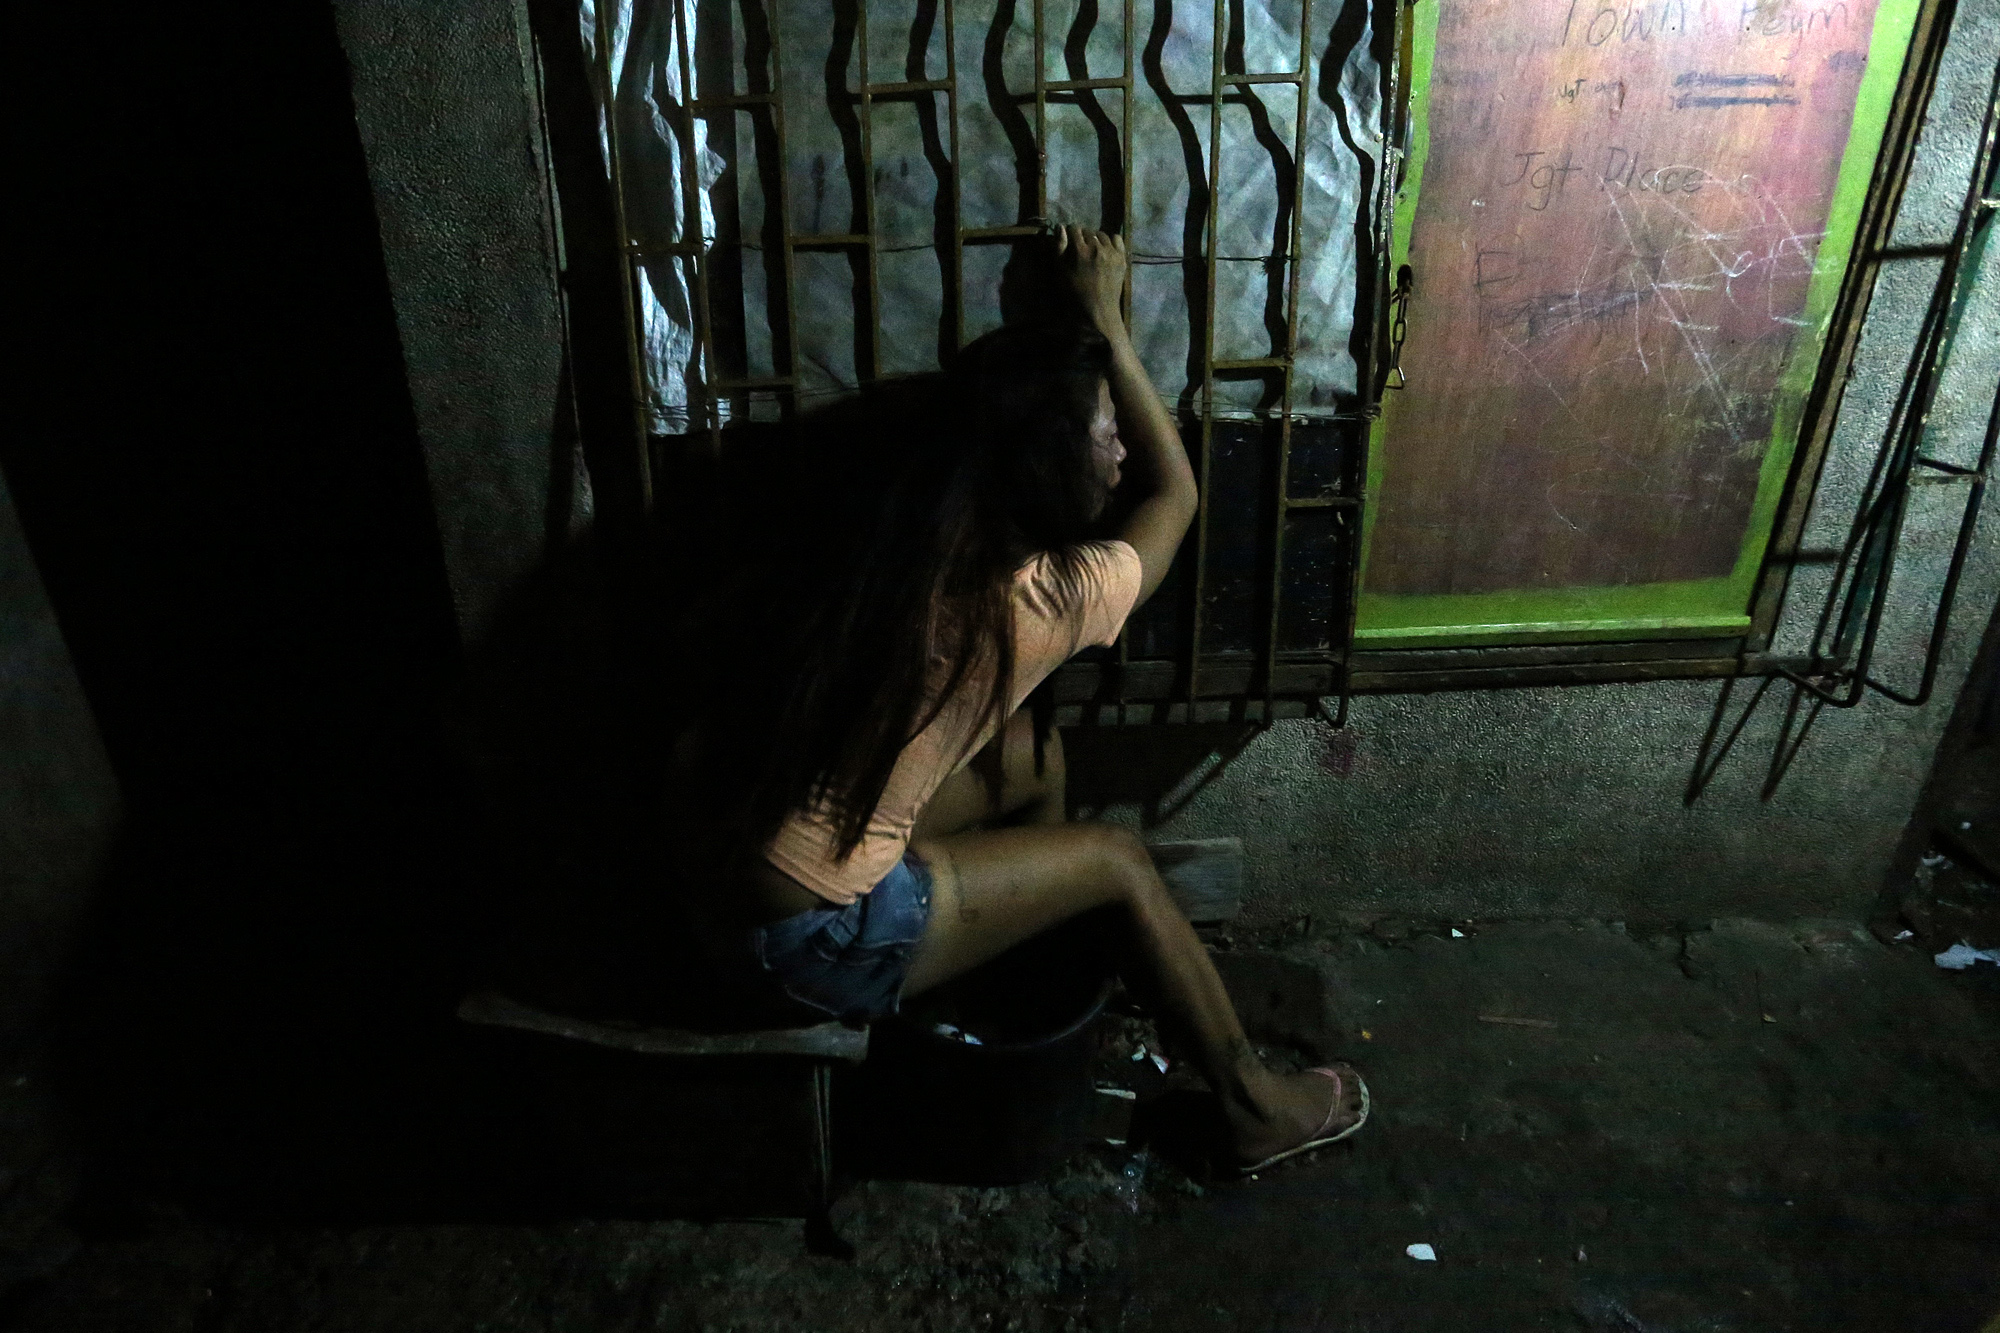 An inconsolable Jessica Derder grieves over the death of her closest brother Jay-R, who was shot and killed by police in an alleged drug buy-bust operation in Lapu-Lapu Street, Barangay Northbay Boulevard South, Navotas City on November 7, 2016.